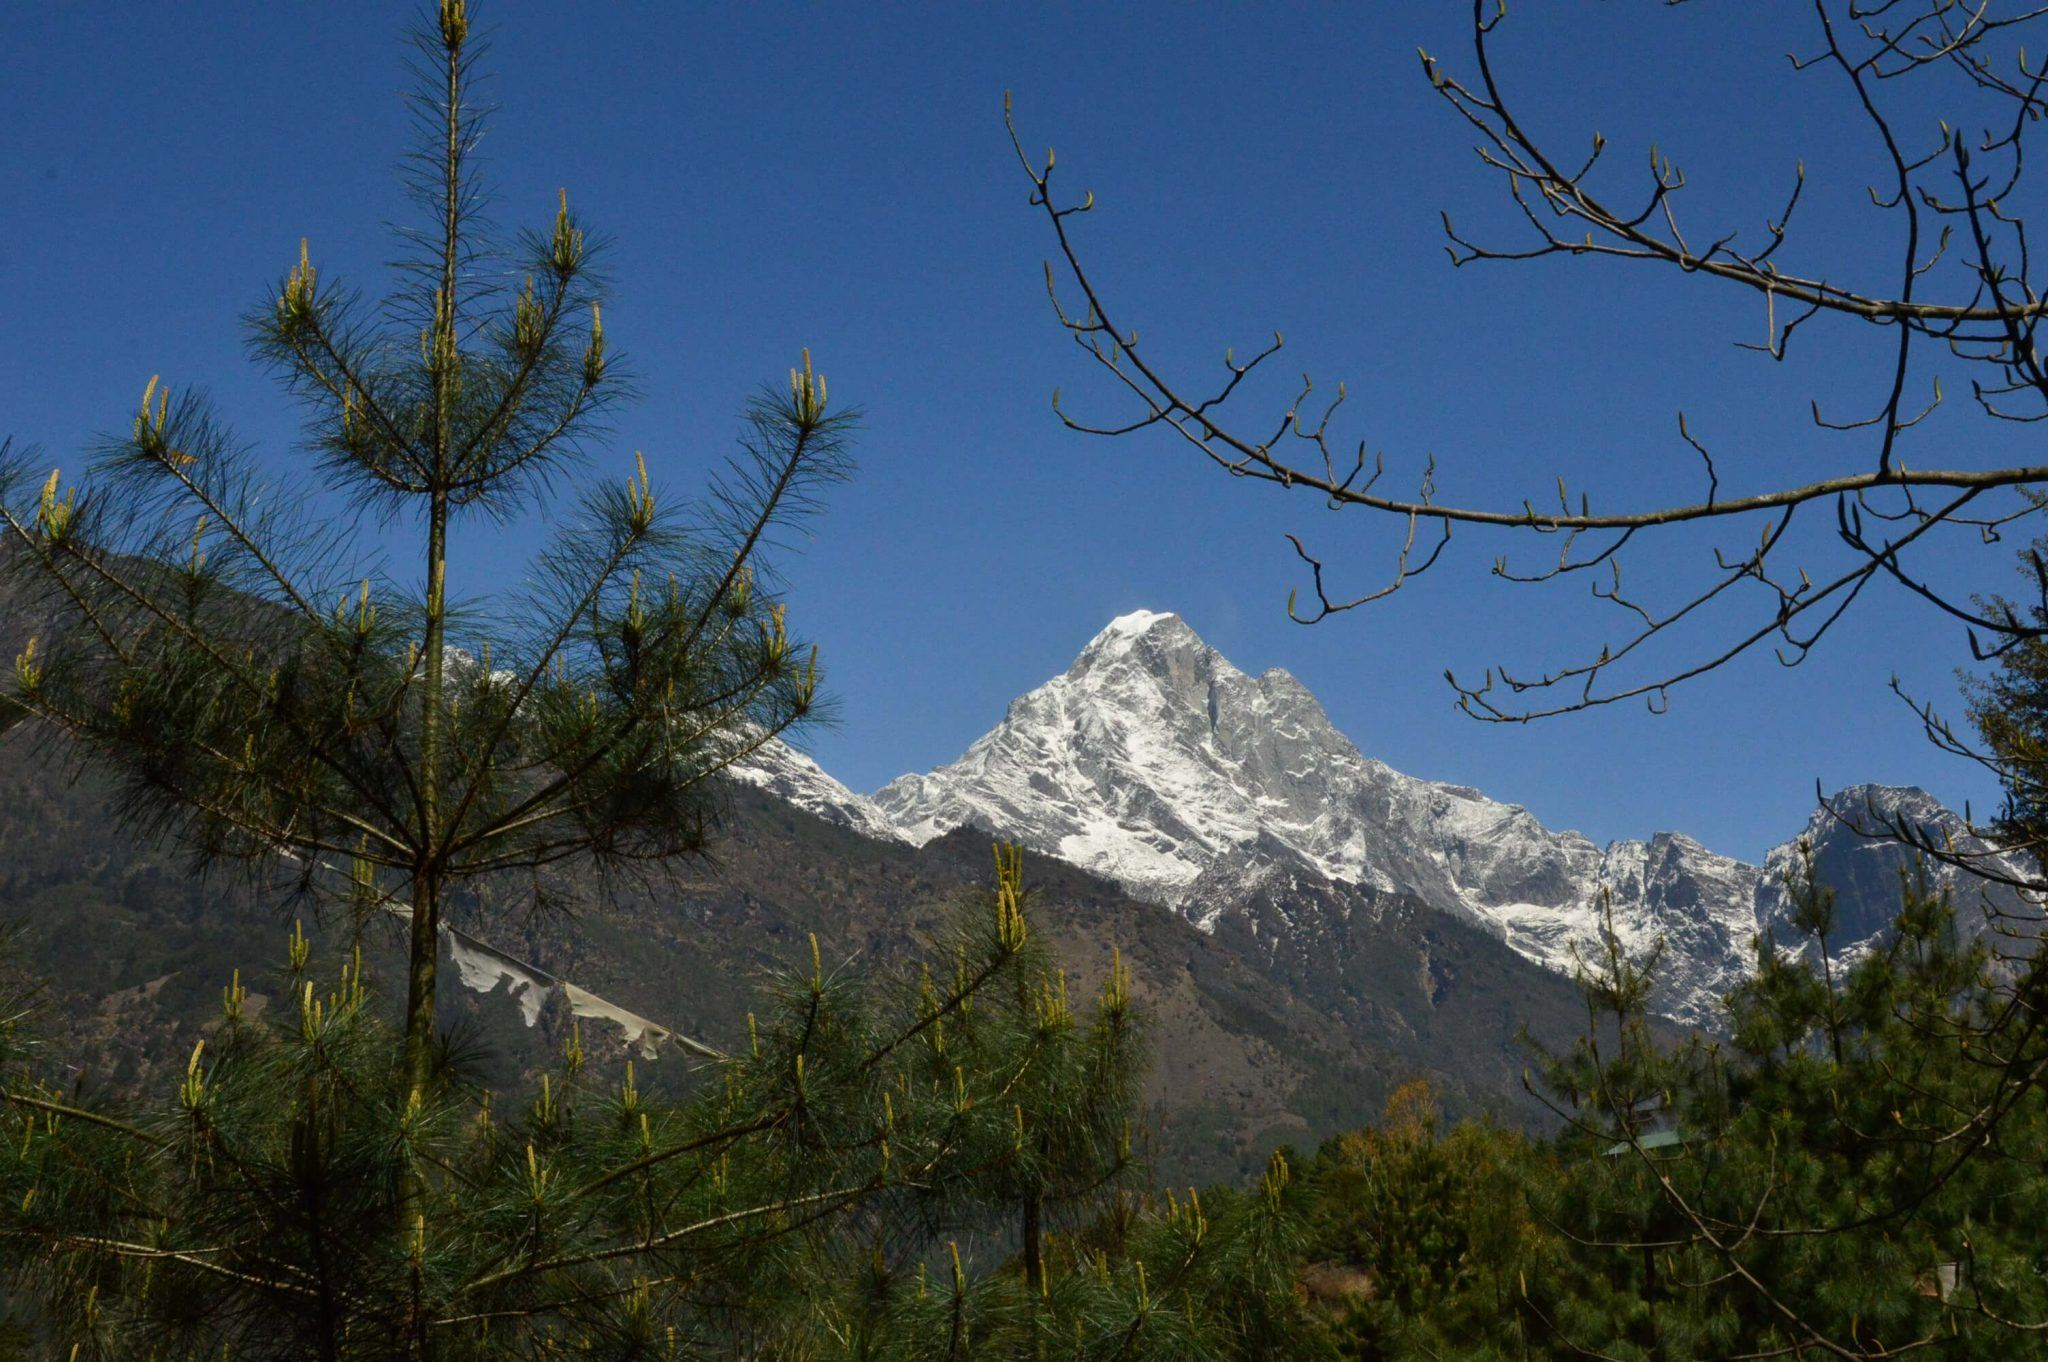 The tip of mount everest seen from the everest base camp trail